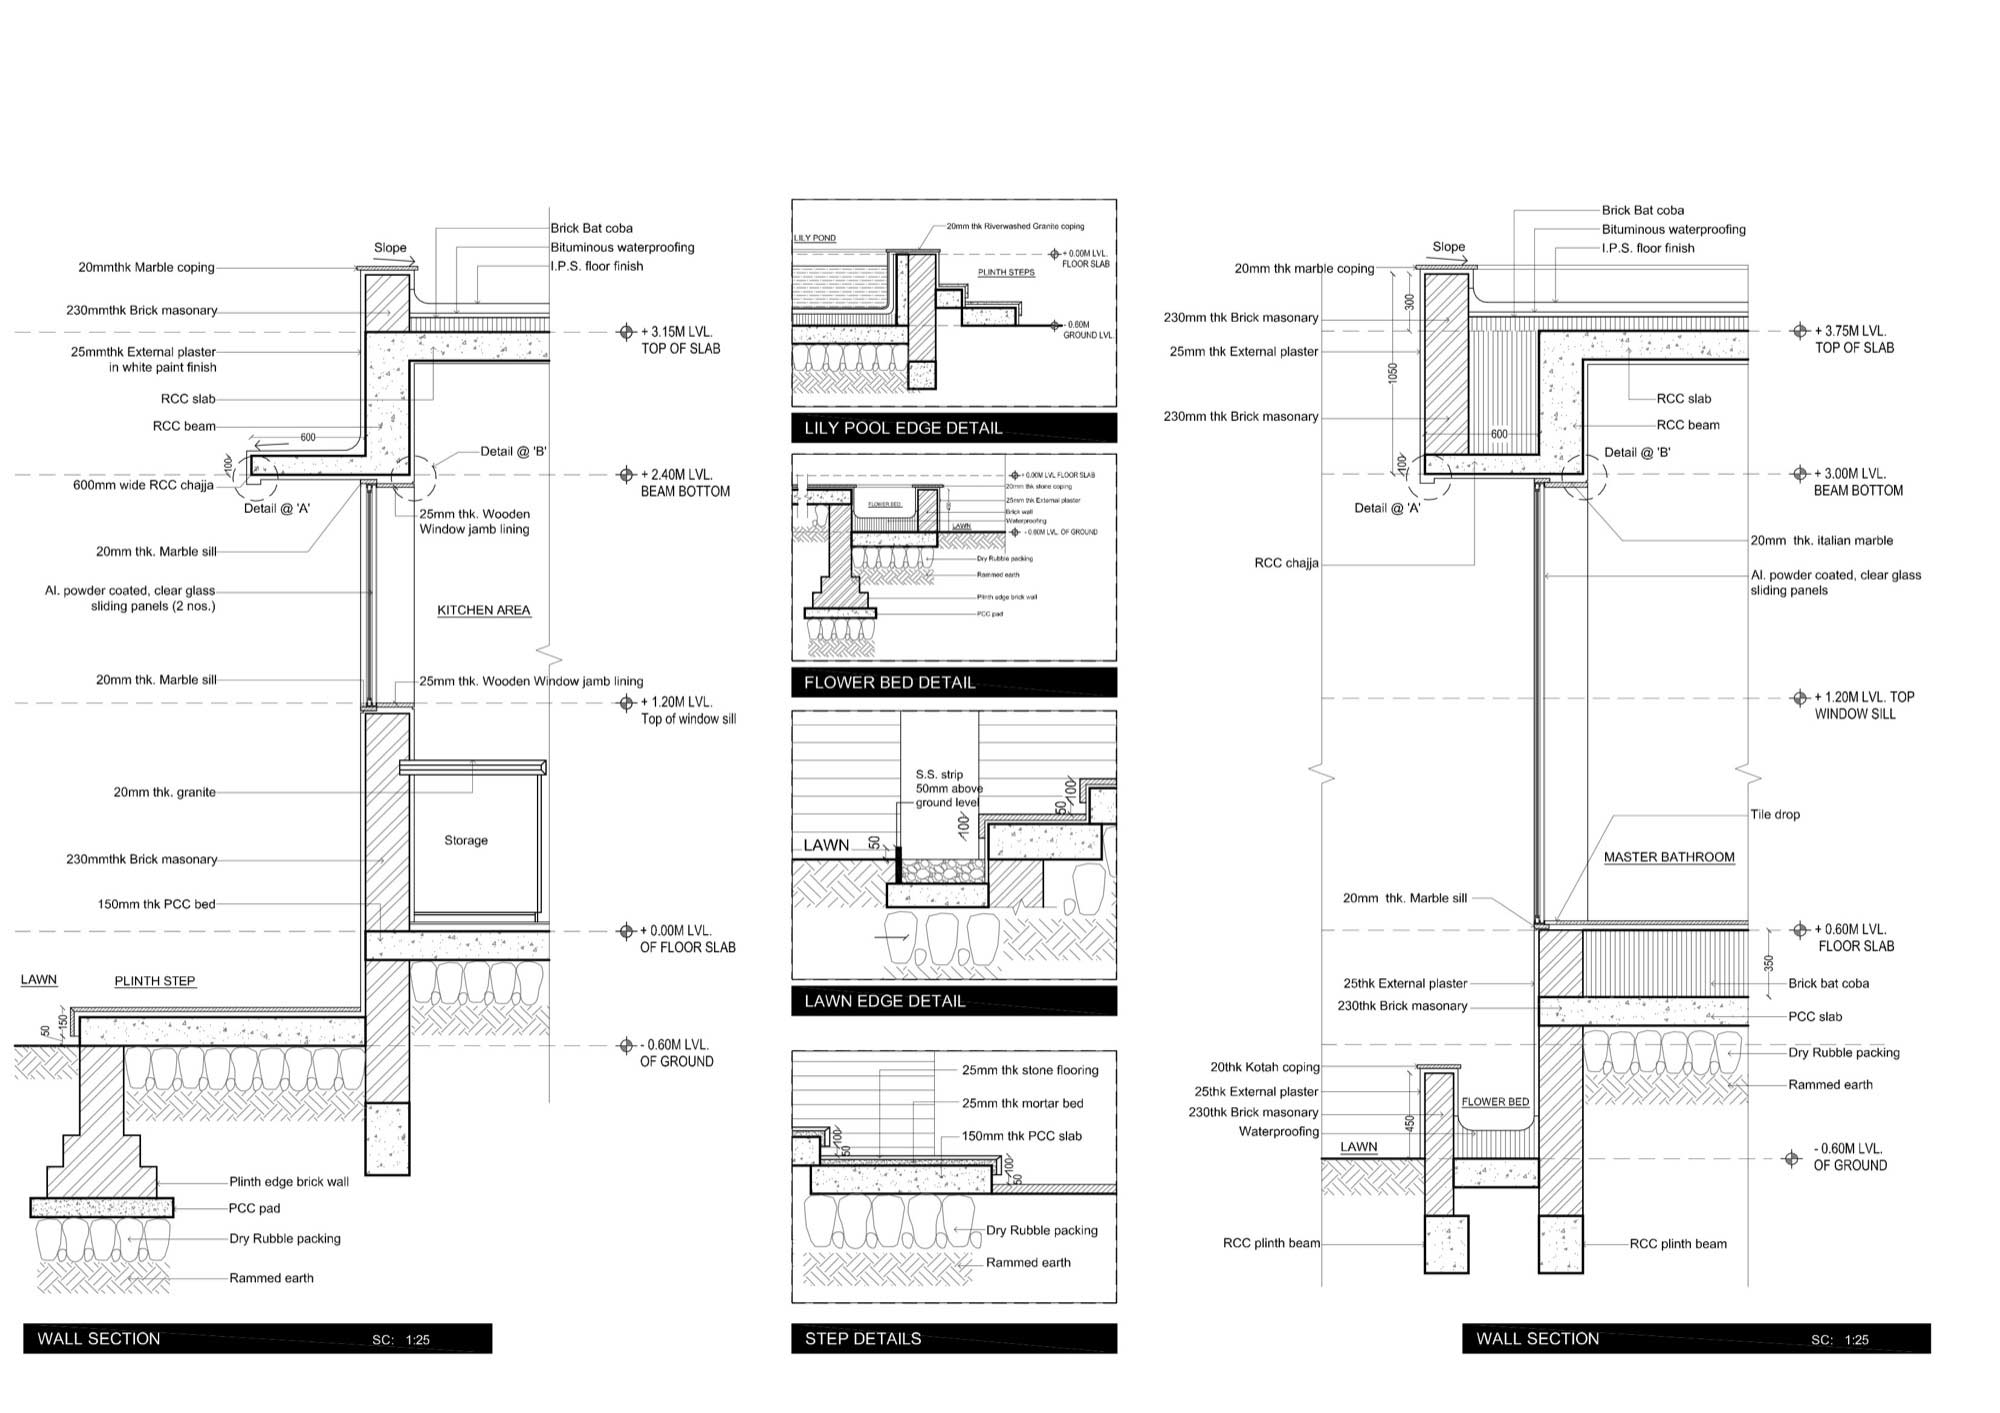 Bathroom section drawing - Wall Section Step Deatils Dinesh Mill Bungalow In Baroda India By Atelier Dnd